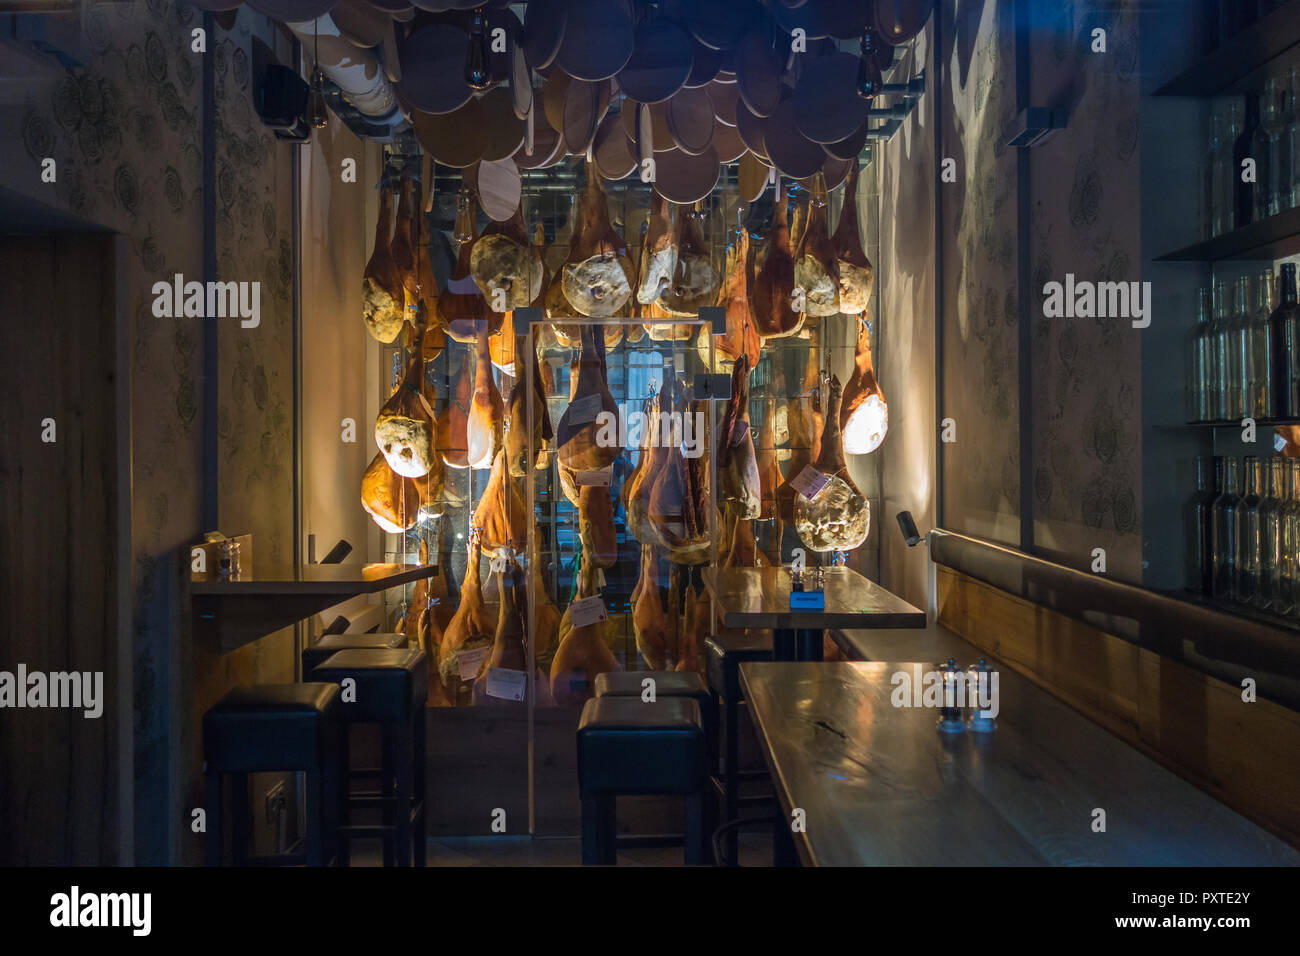 Vienna, Austria - Februay 5, 2017: A small intimate restaurant displays its certified meats in a glass fridge next to guest tables - Stock Image